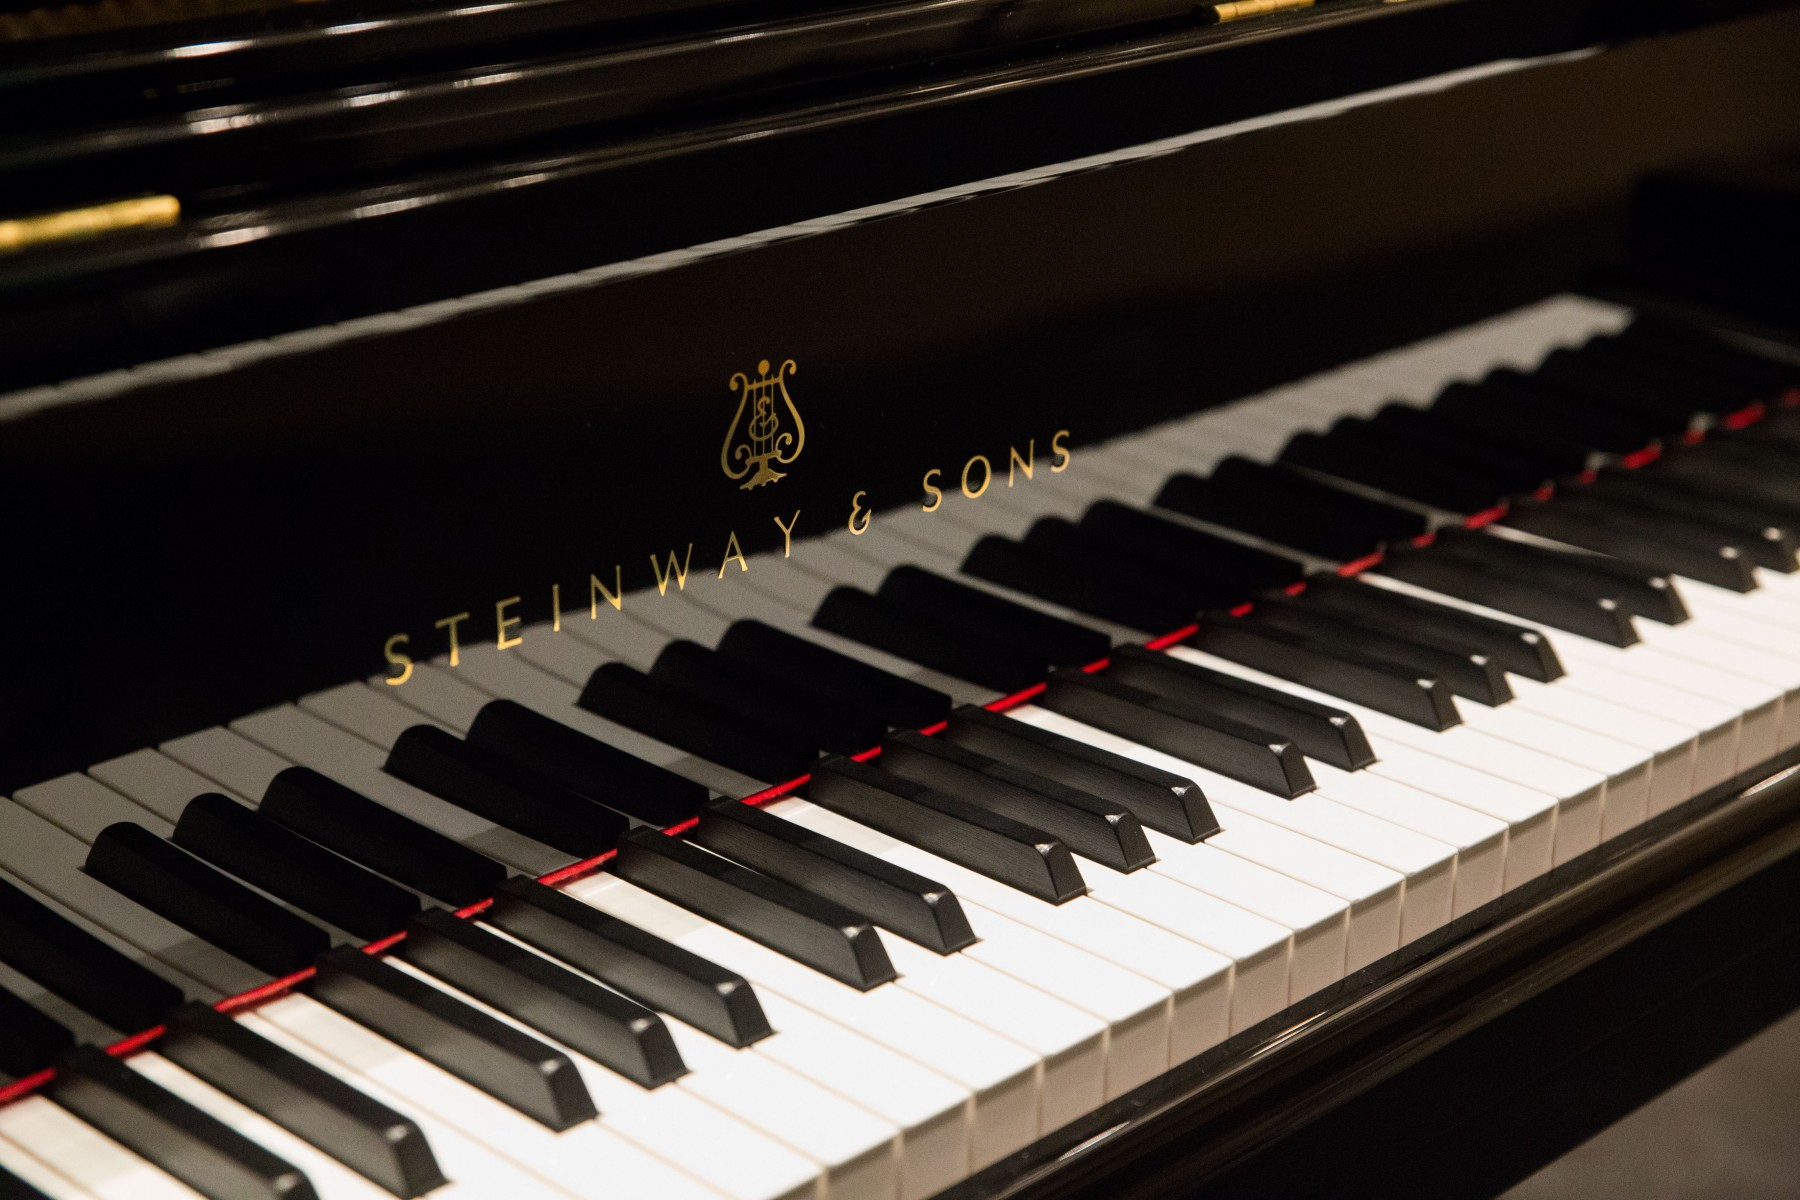 Steinway Concert D Grand piano